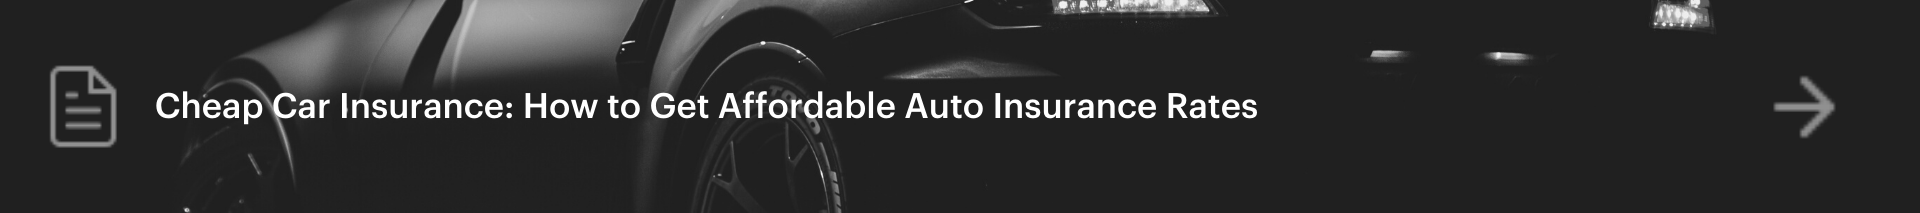 How to get affordable car insurance rates